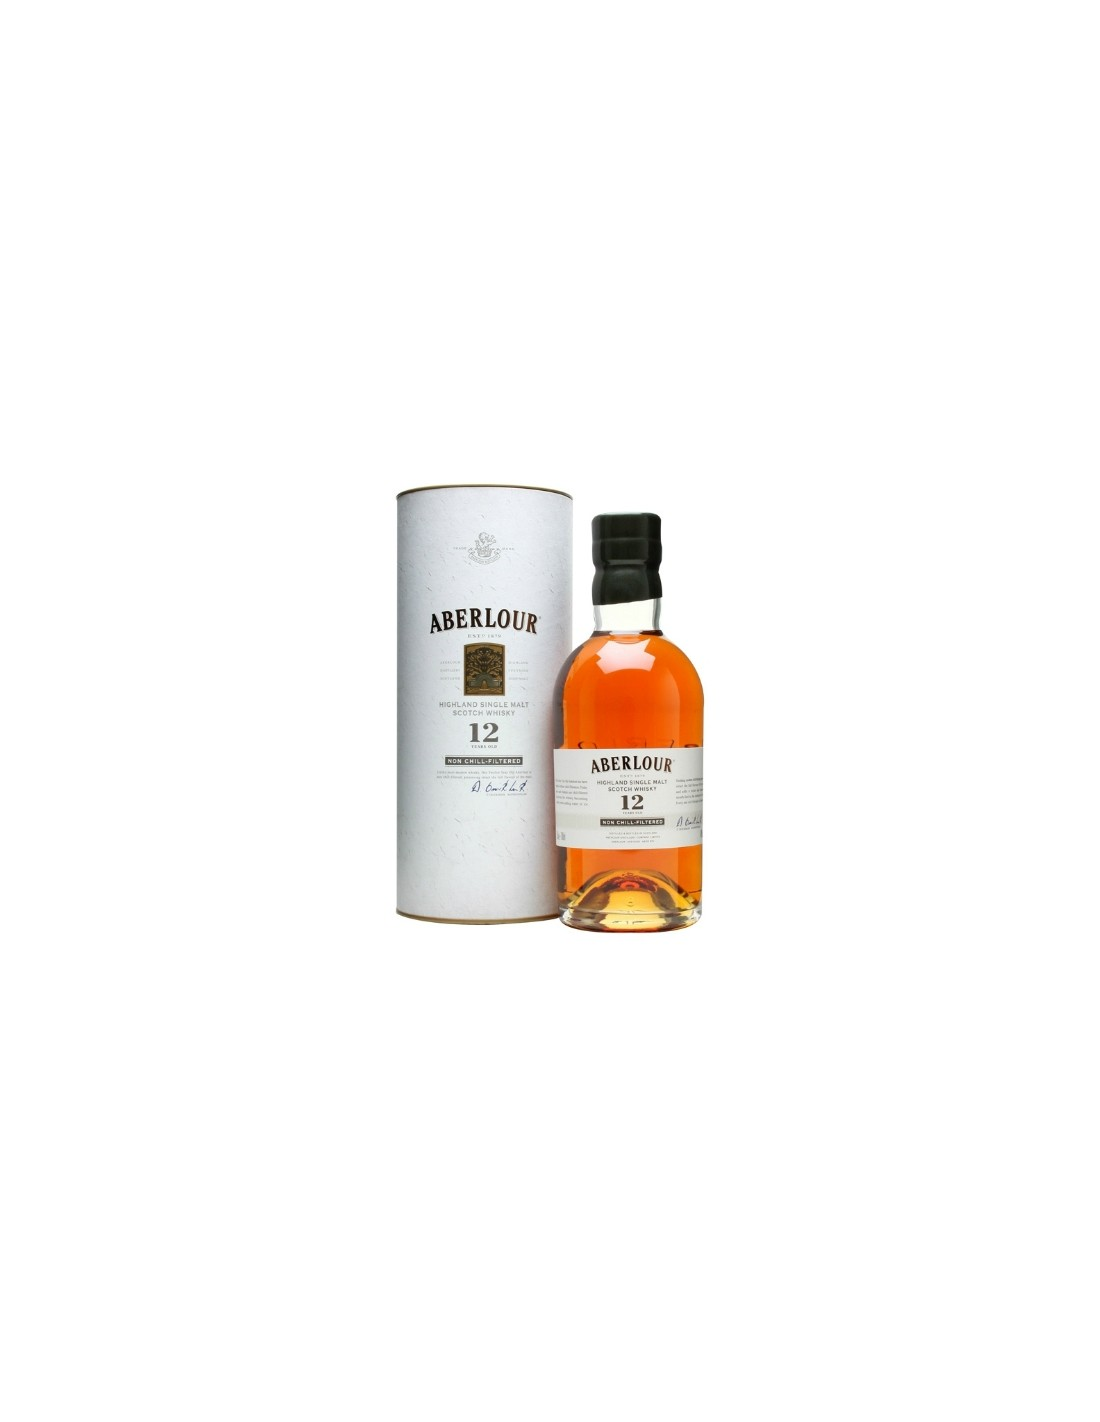 Whisky Aberlour Non-Chill-Filtered, 12 ani, 40% alc., 0.7L, Scotia